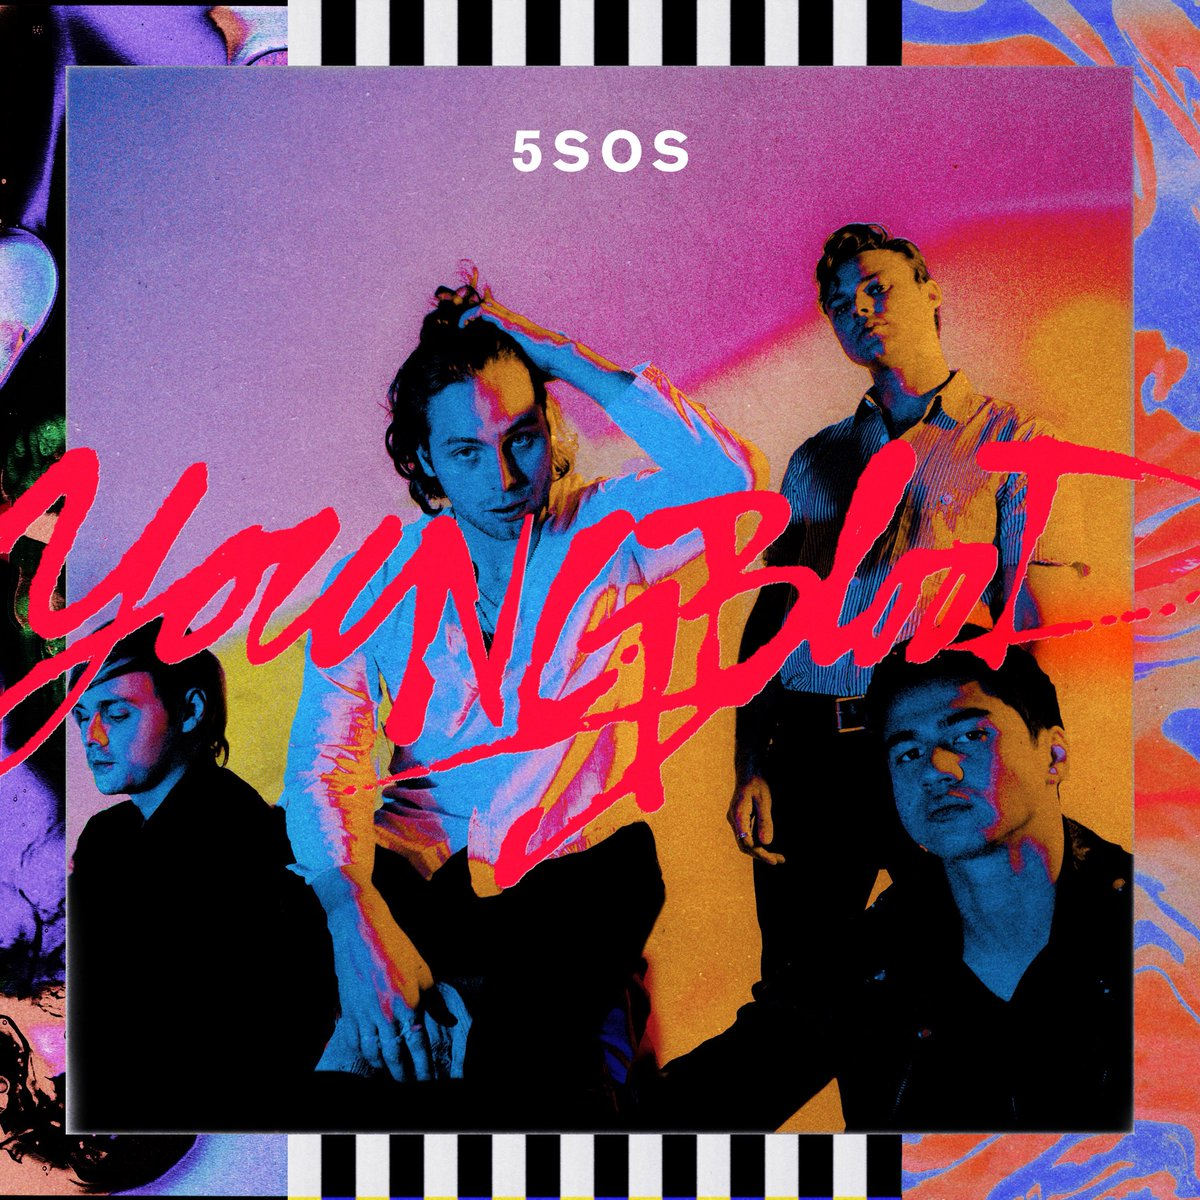 This has got to be the number 1 record this week. Go get it ! @5SOS https://t.co/7Kzc3xUAmm